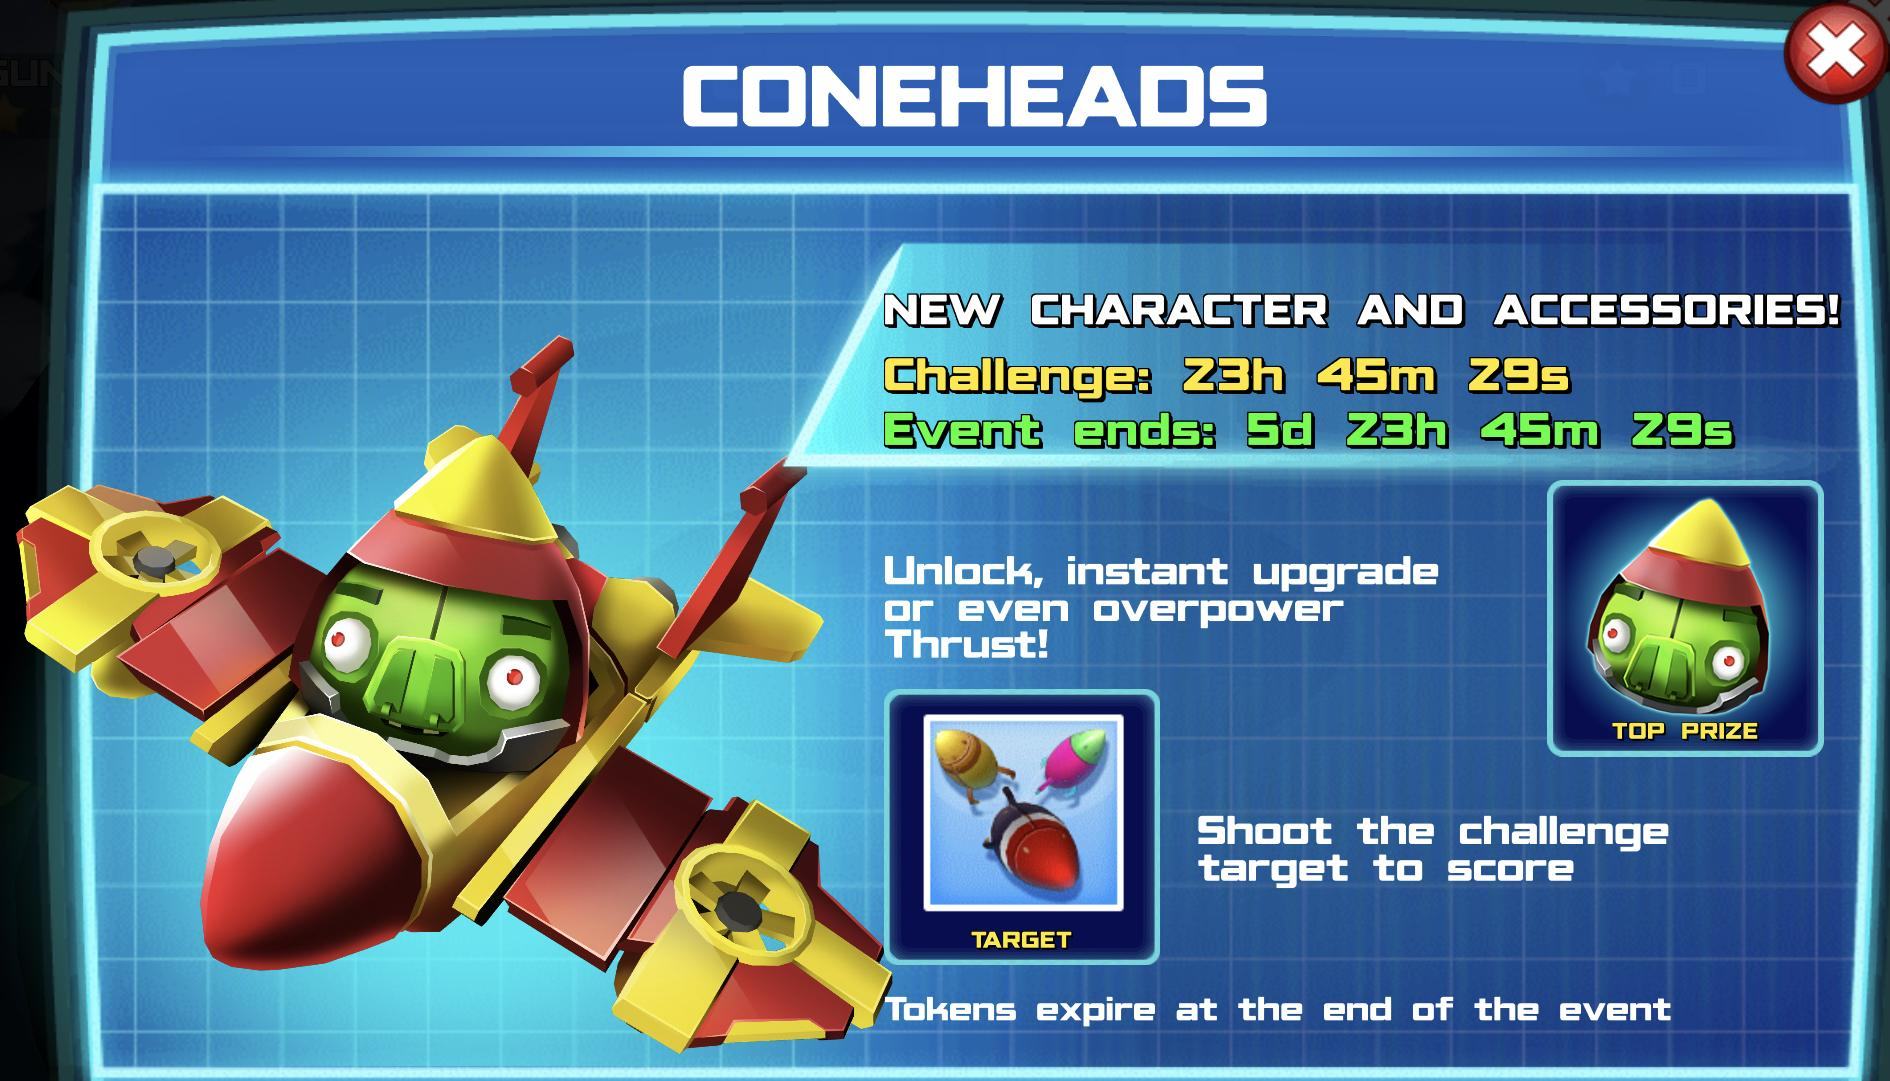 The Event Banner for the Coneheads